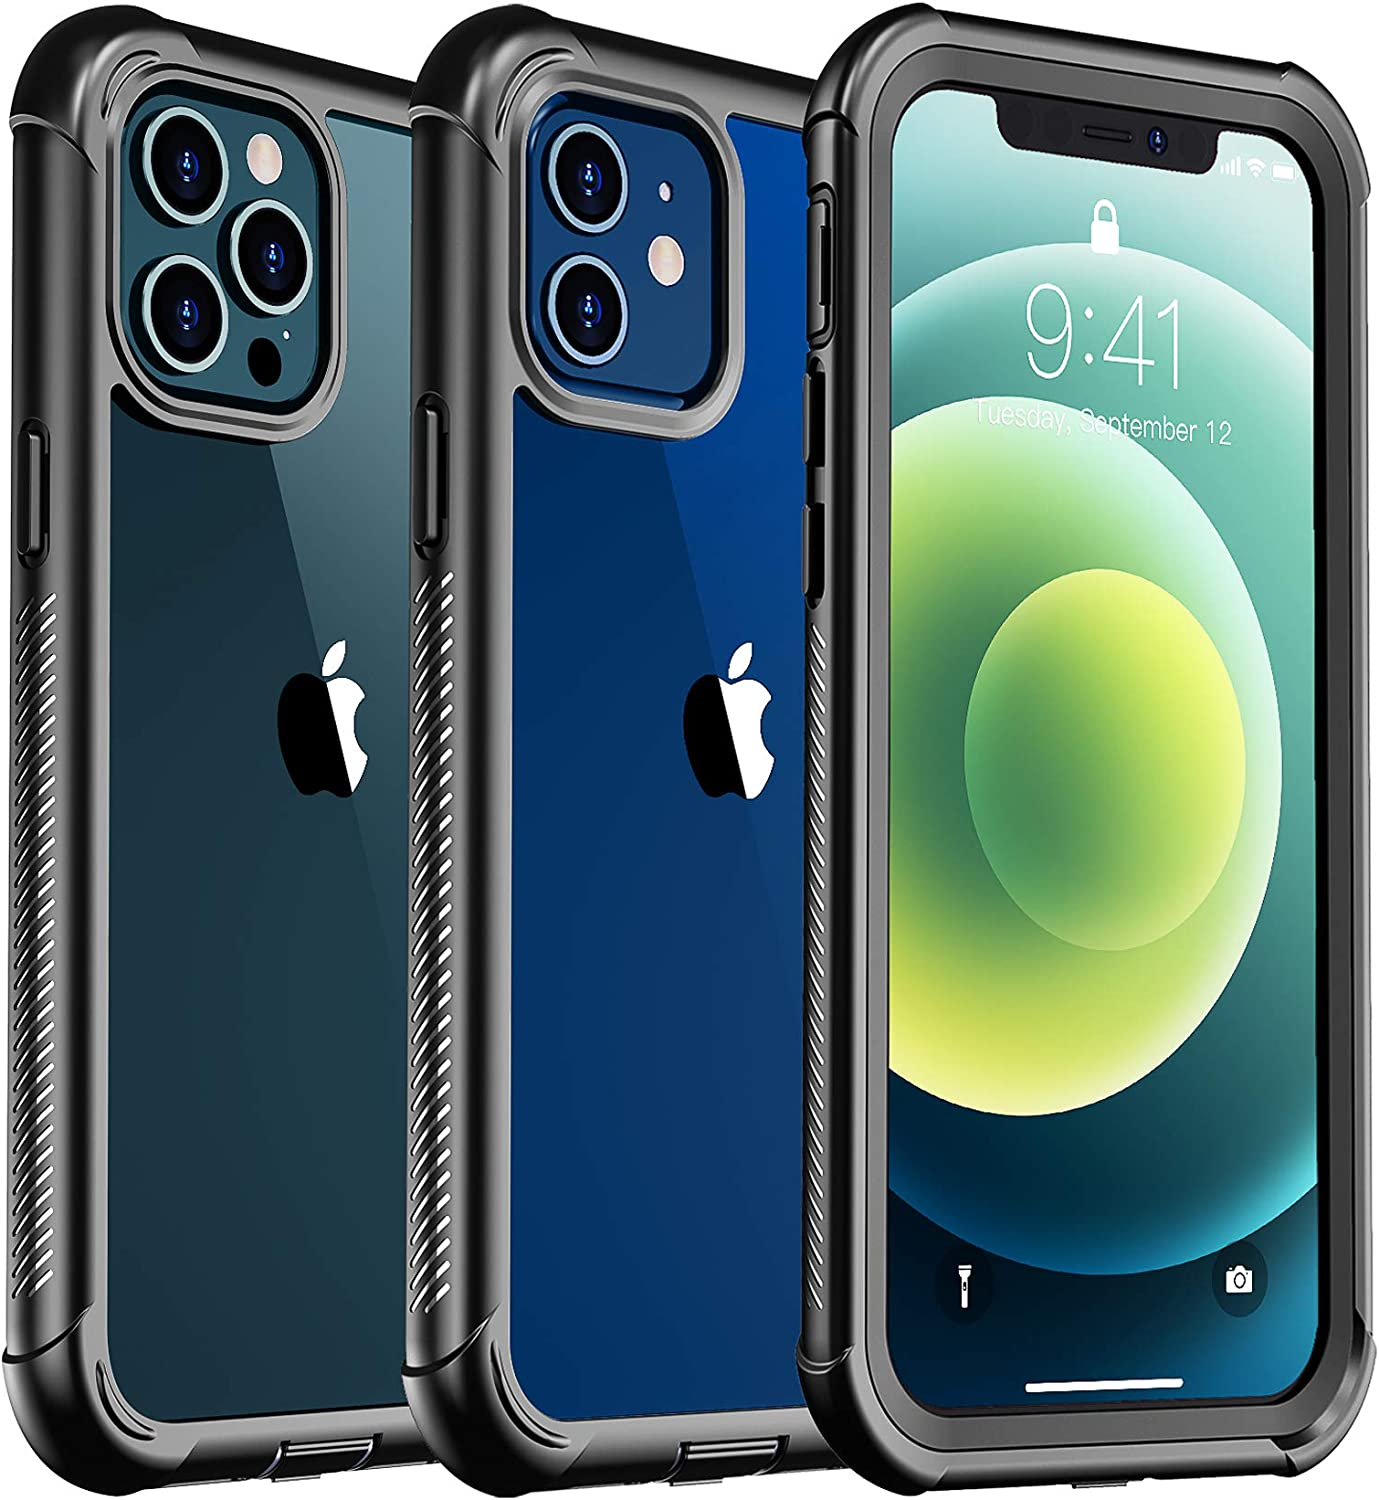 Temdan Bumper Clear Case Designed for iPhone 12 Case, for iPhone 12 Pro Case,Full Body with Built-in Screen Protector Rugged Shockproof Dropproof Cover for iPhone 12, for iPhone 12 Pro 6.1 inch(2020)